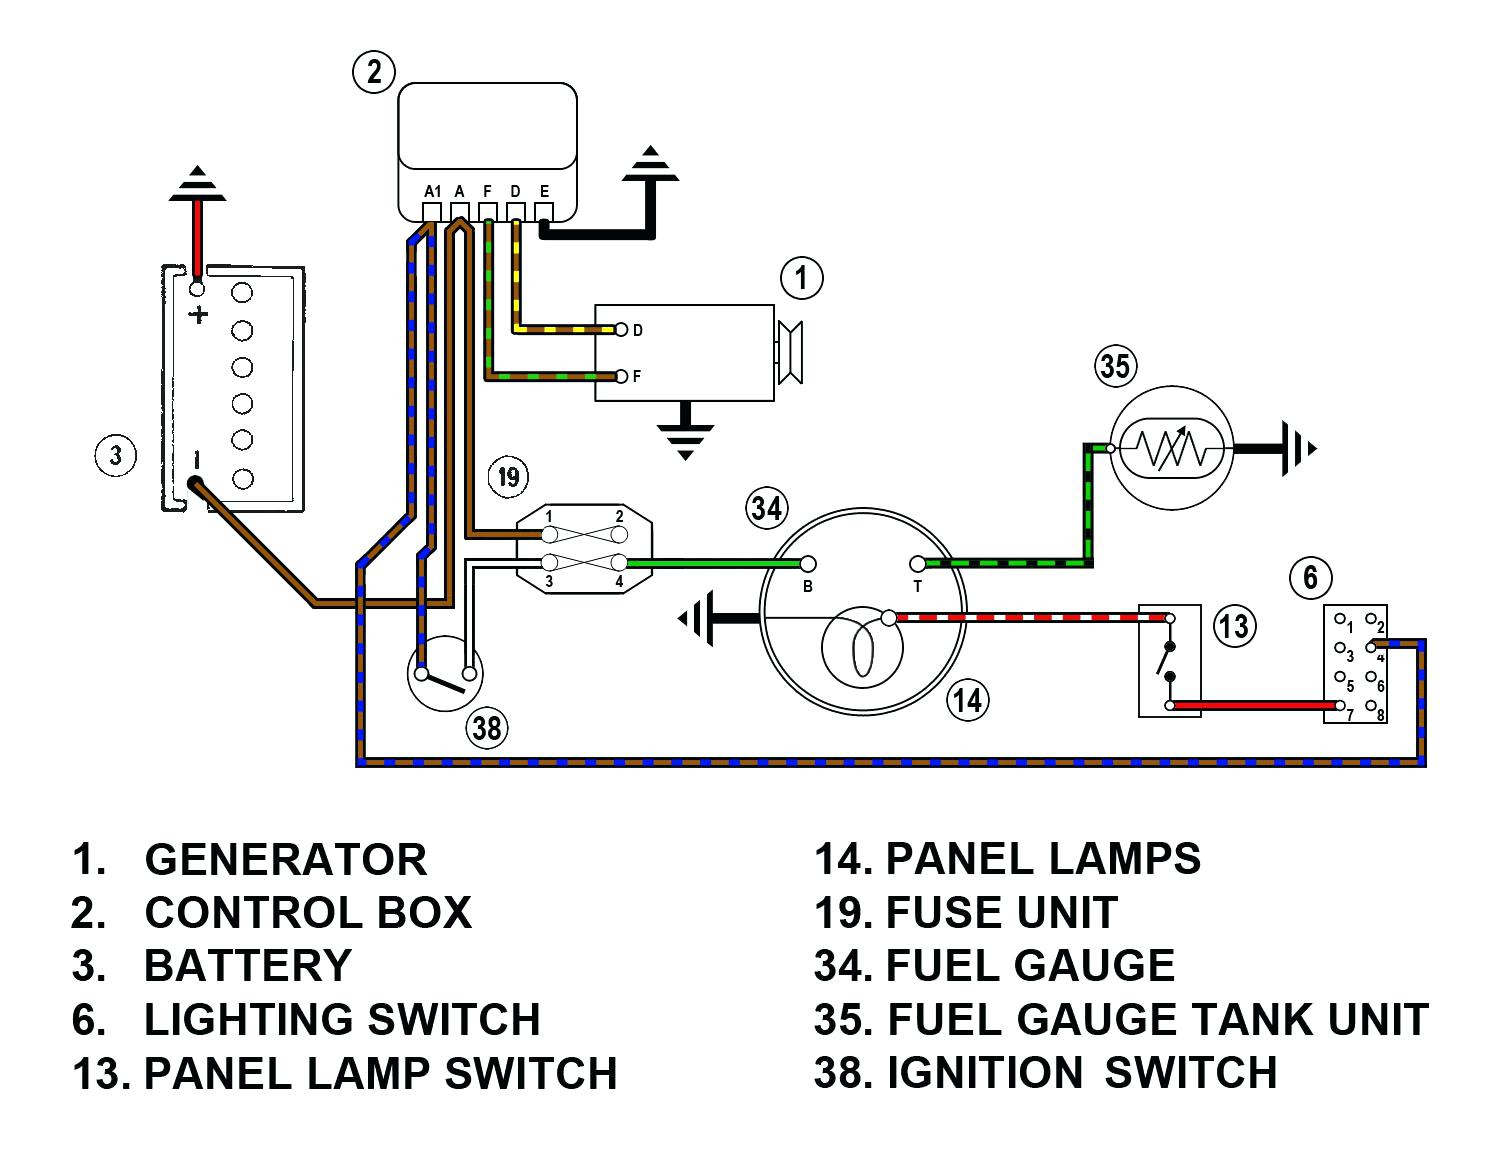 Wiring Diagram For Gooseneck Trailer from wholefoodsonabudget.com